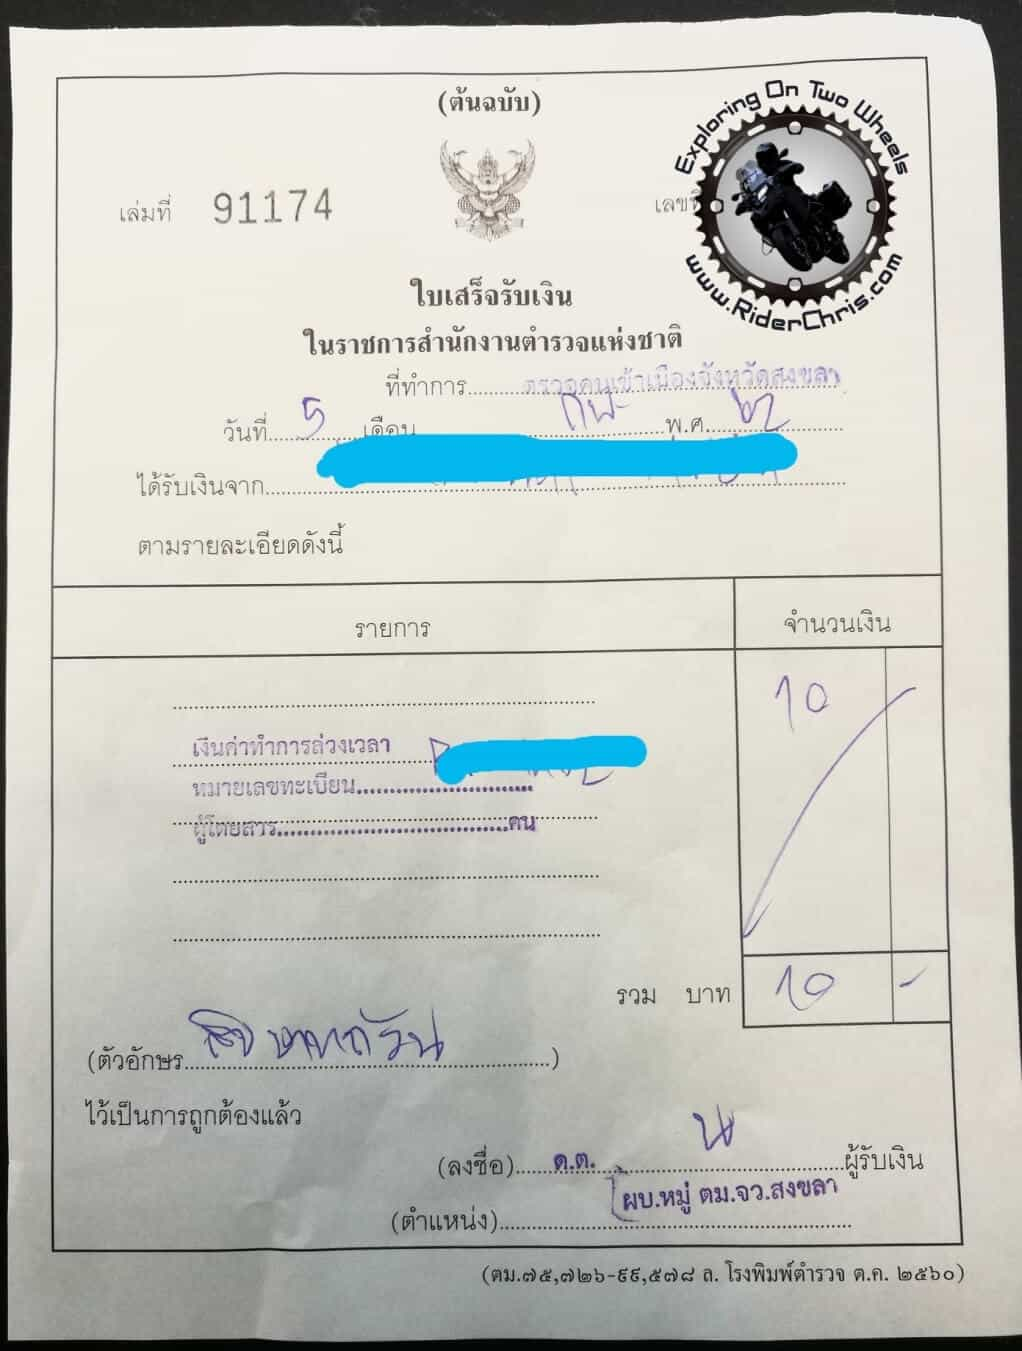 Thailand Border Crossing Motorcycle Fee receipt